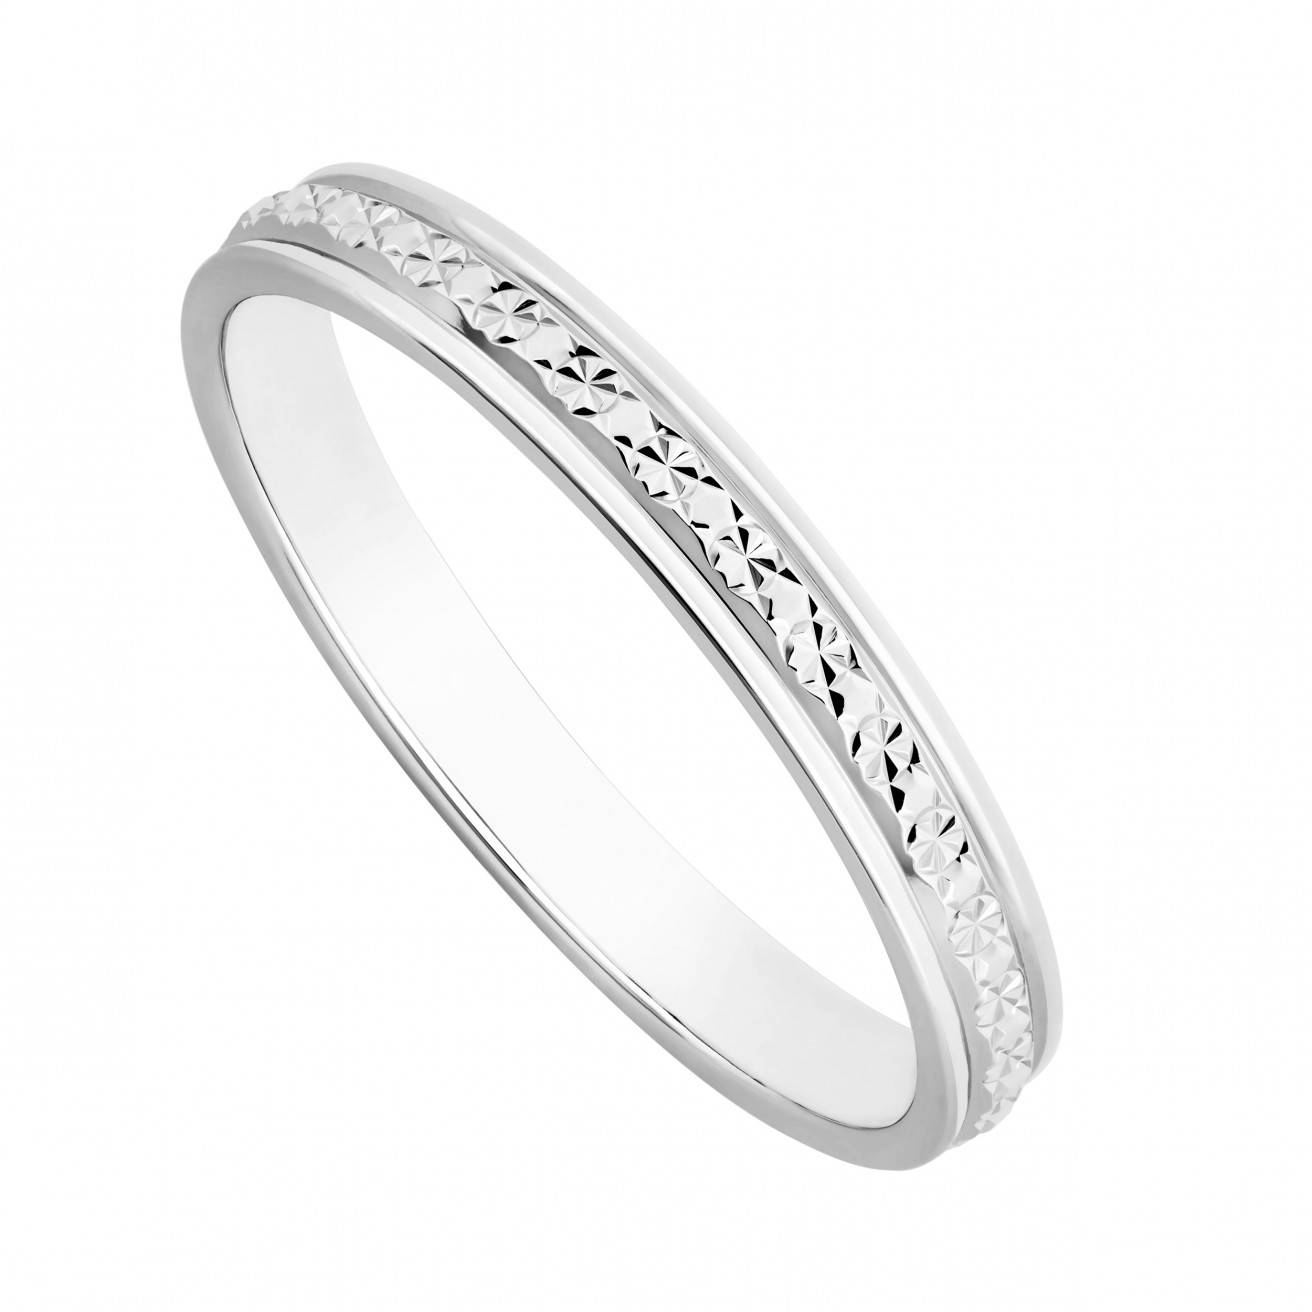 Buy A Diamond Wedding Ring Online – Fraser Hart Regarding Diamonds Wedding Rings (View 15 of 15)